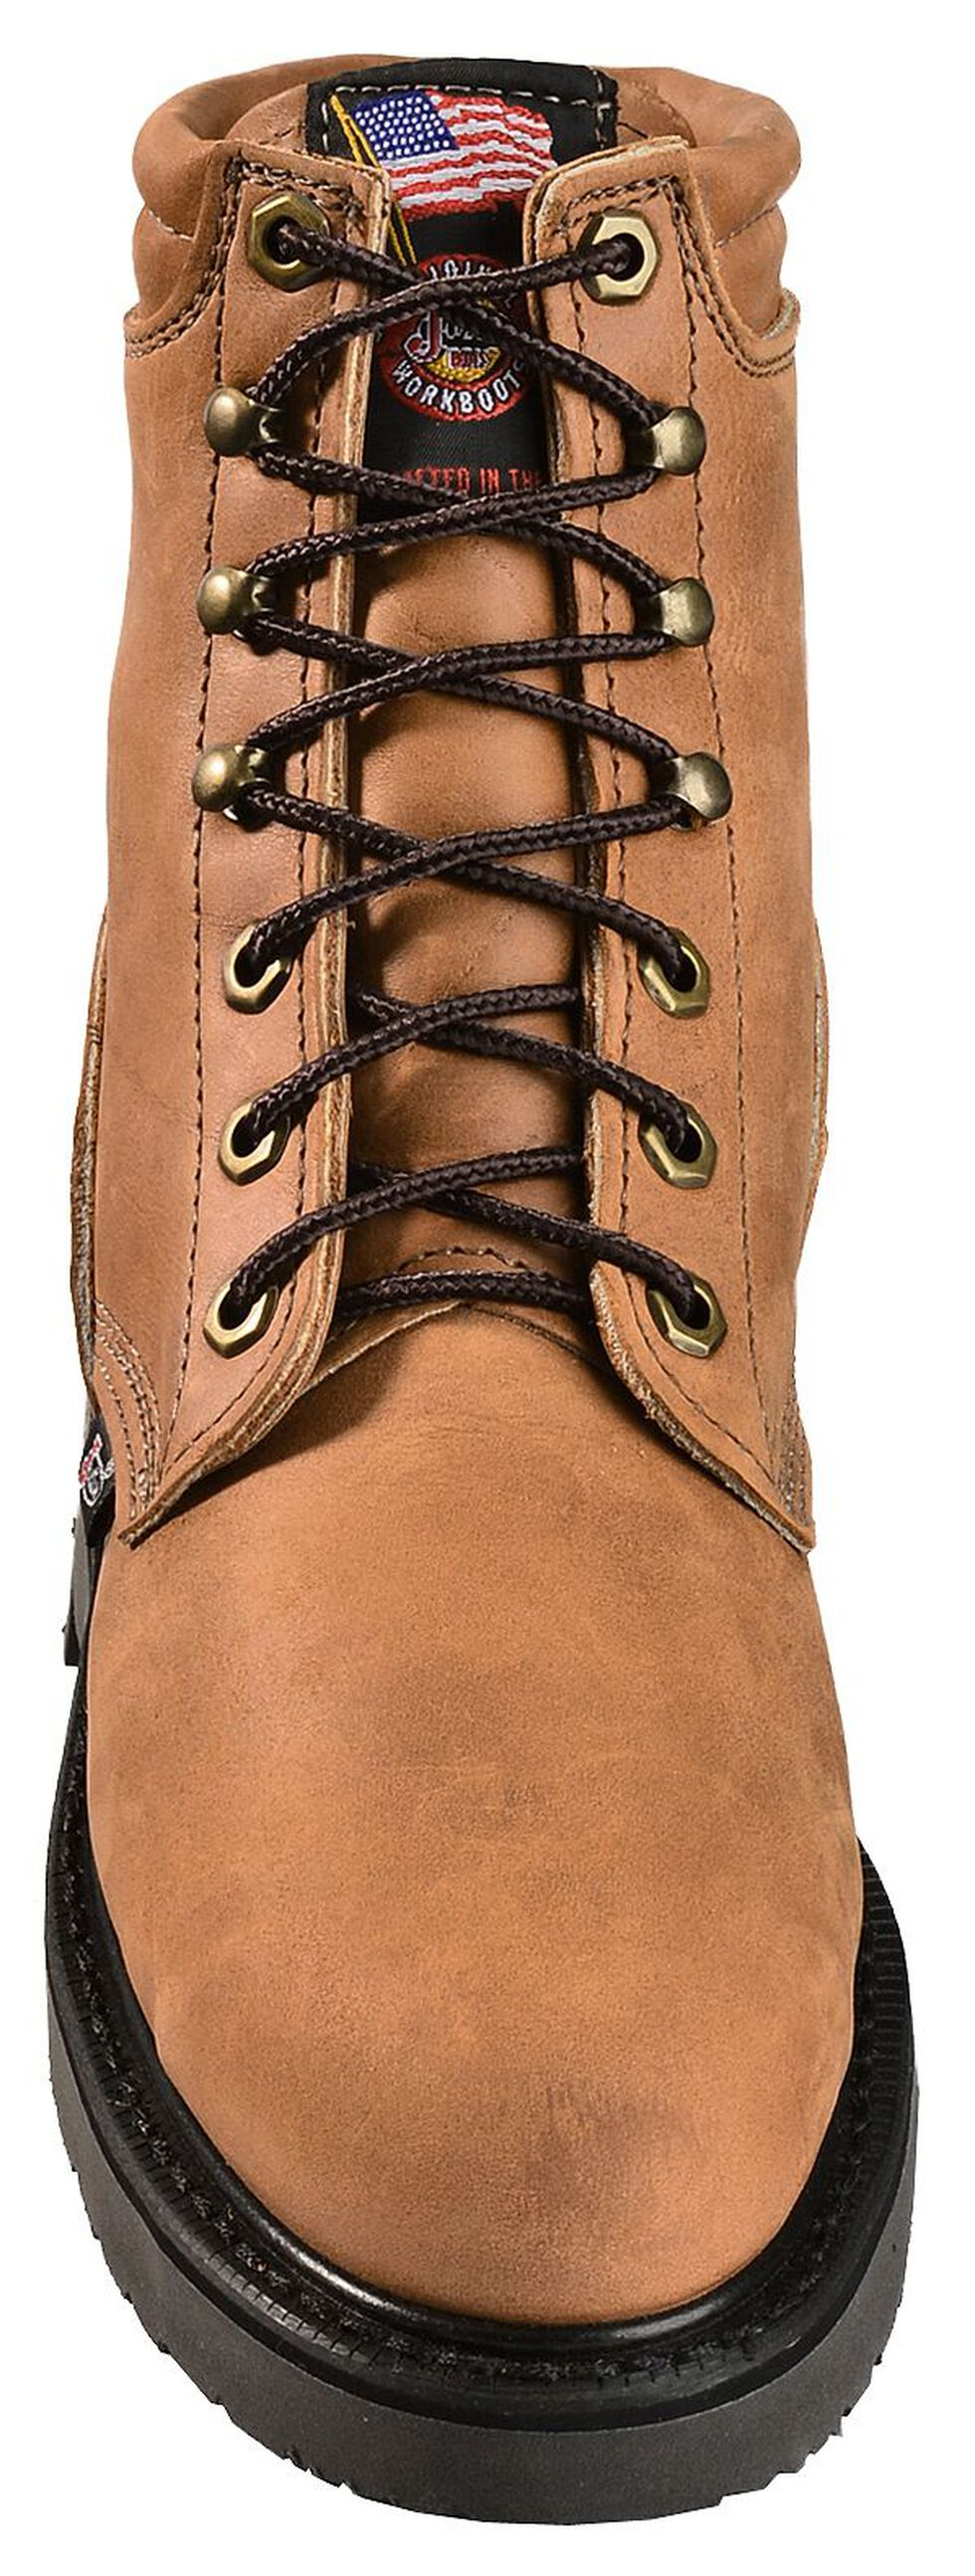 """Justin Women's 6"""" Dary Lace-up EH Work Boots - Steel Toe, Brown, hi-res"""